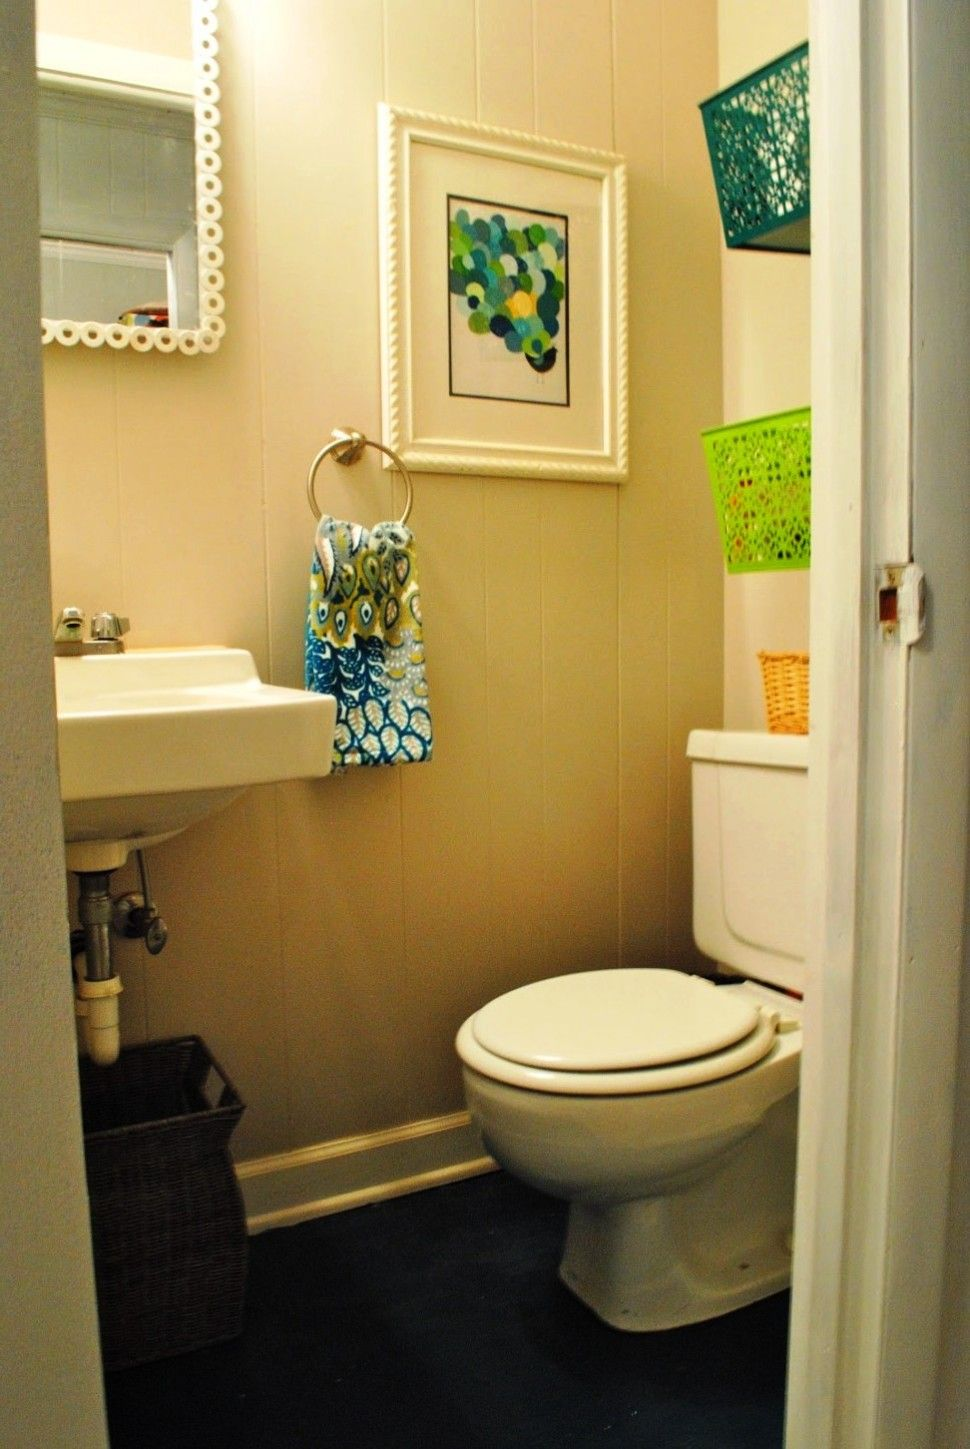 Bathroom:Creative Small Bathroom Decorating Ideas With Toilet And ...